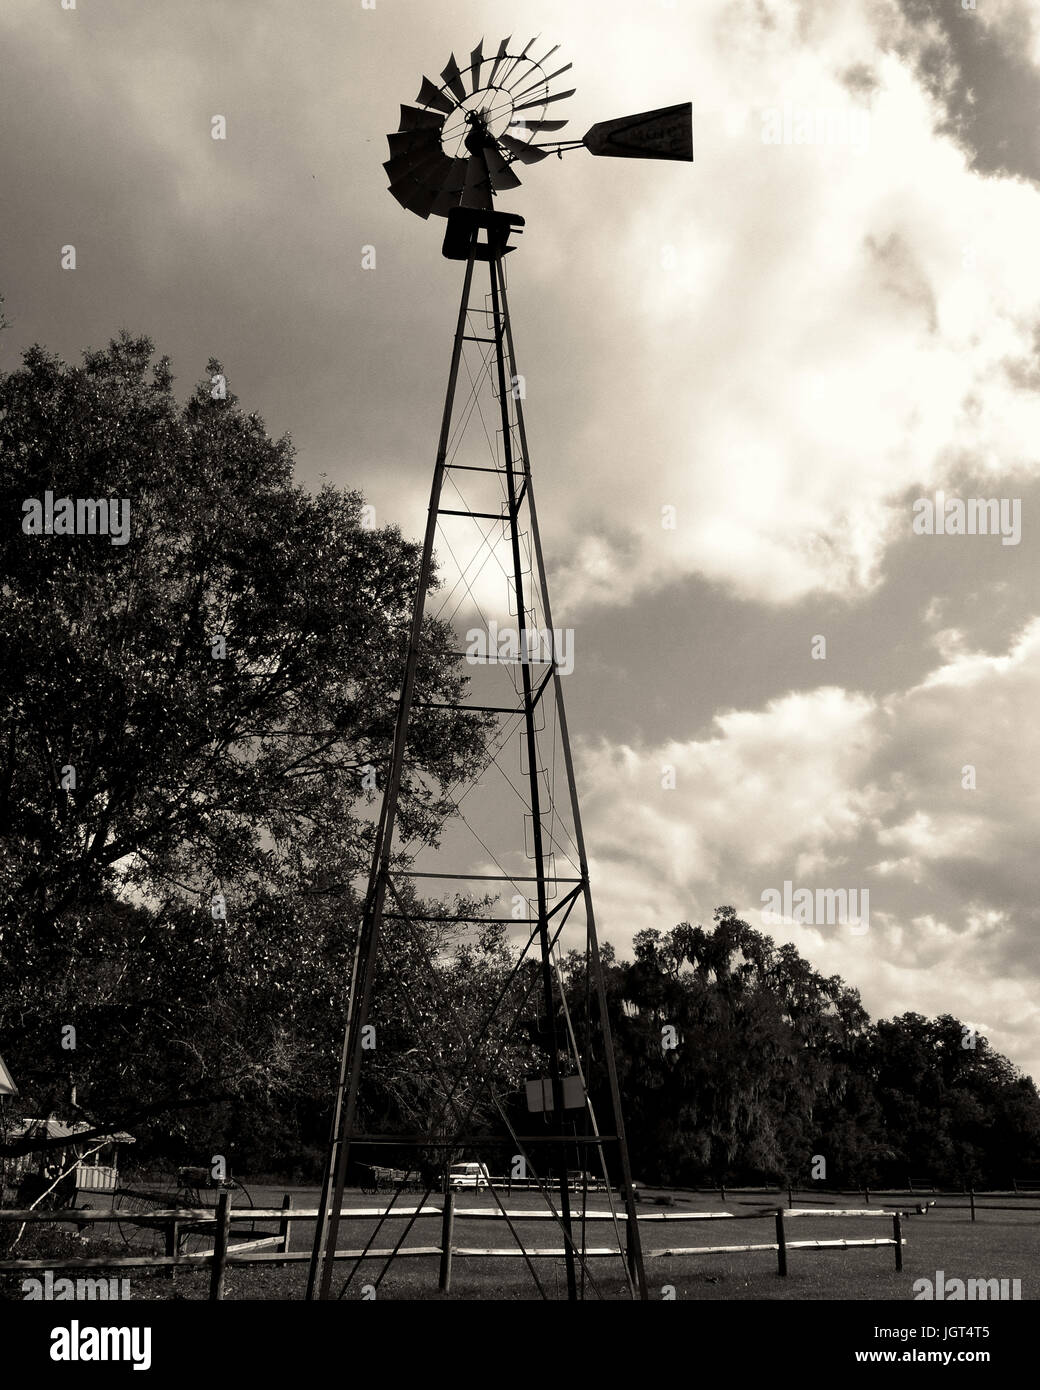 Windmill on a cloudy day while sun is setting - Stock Image